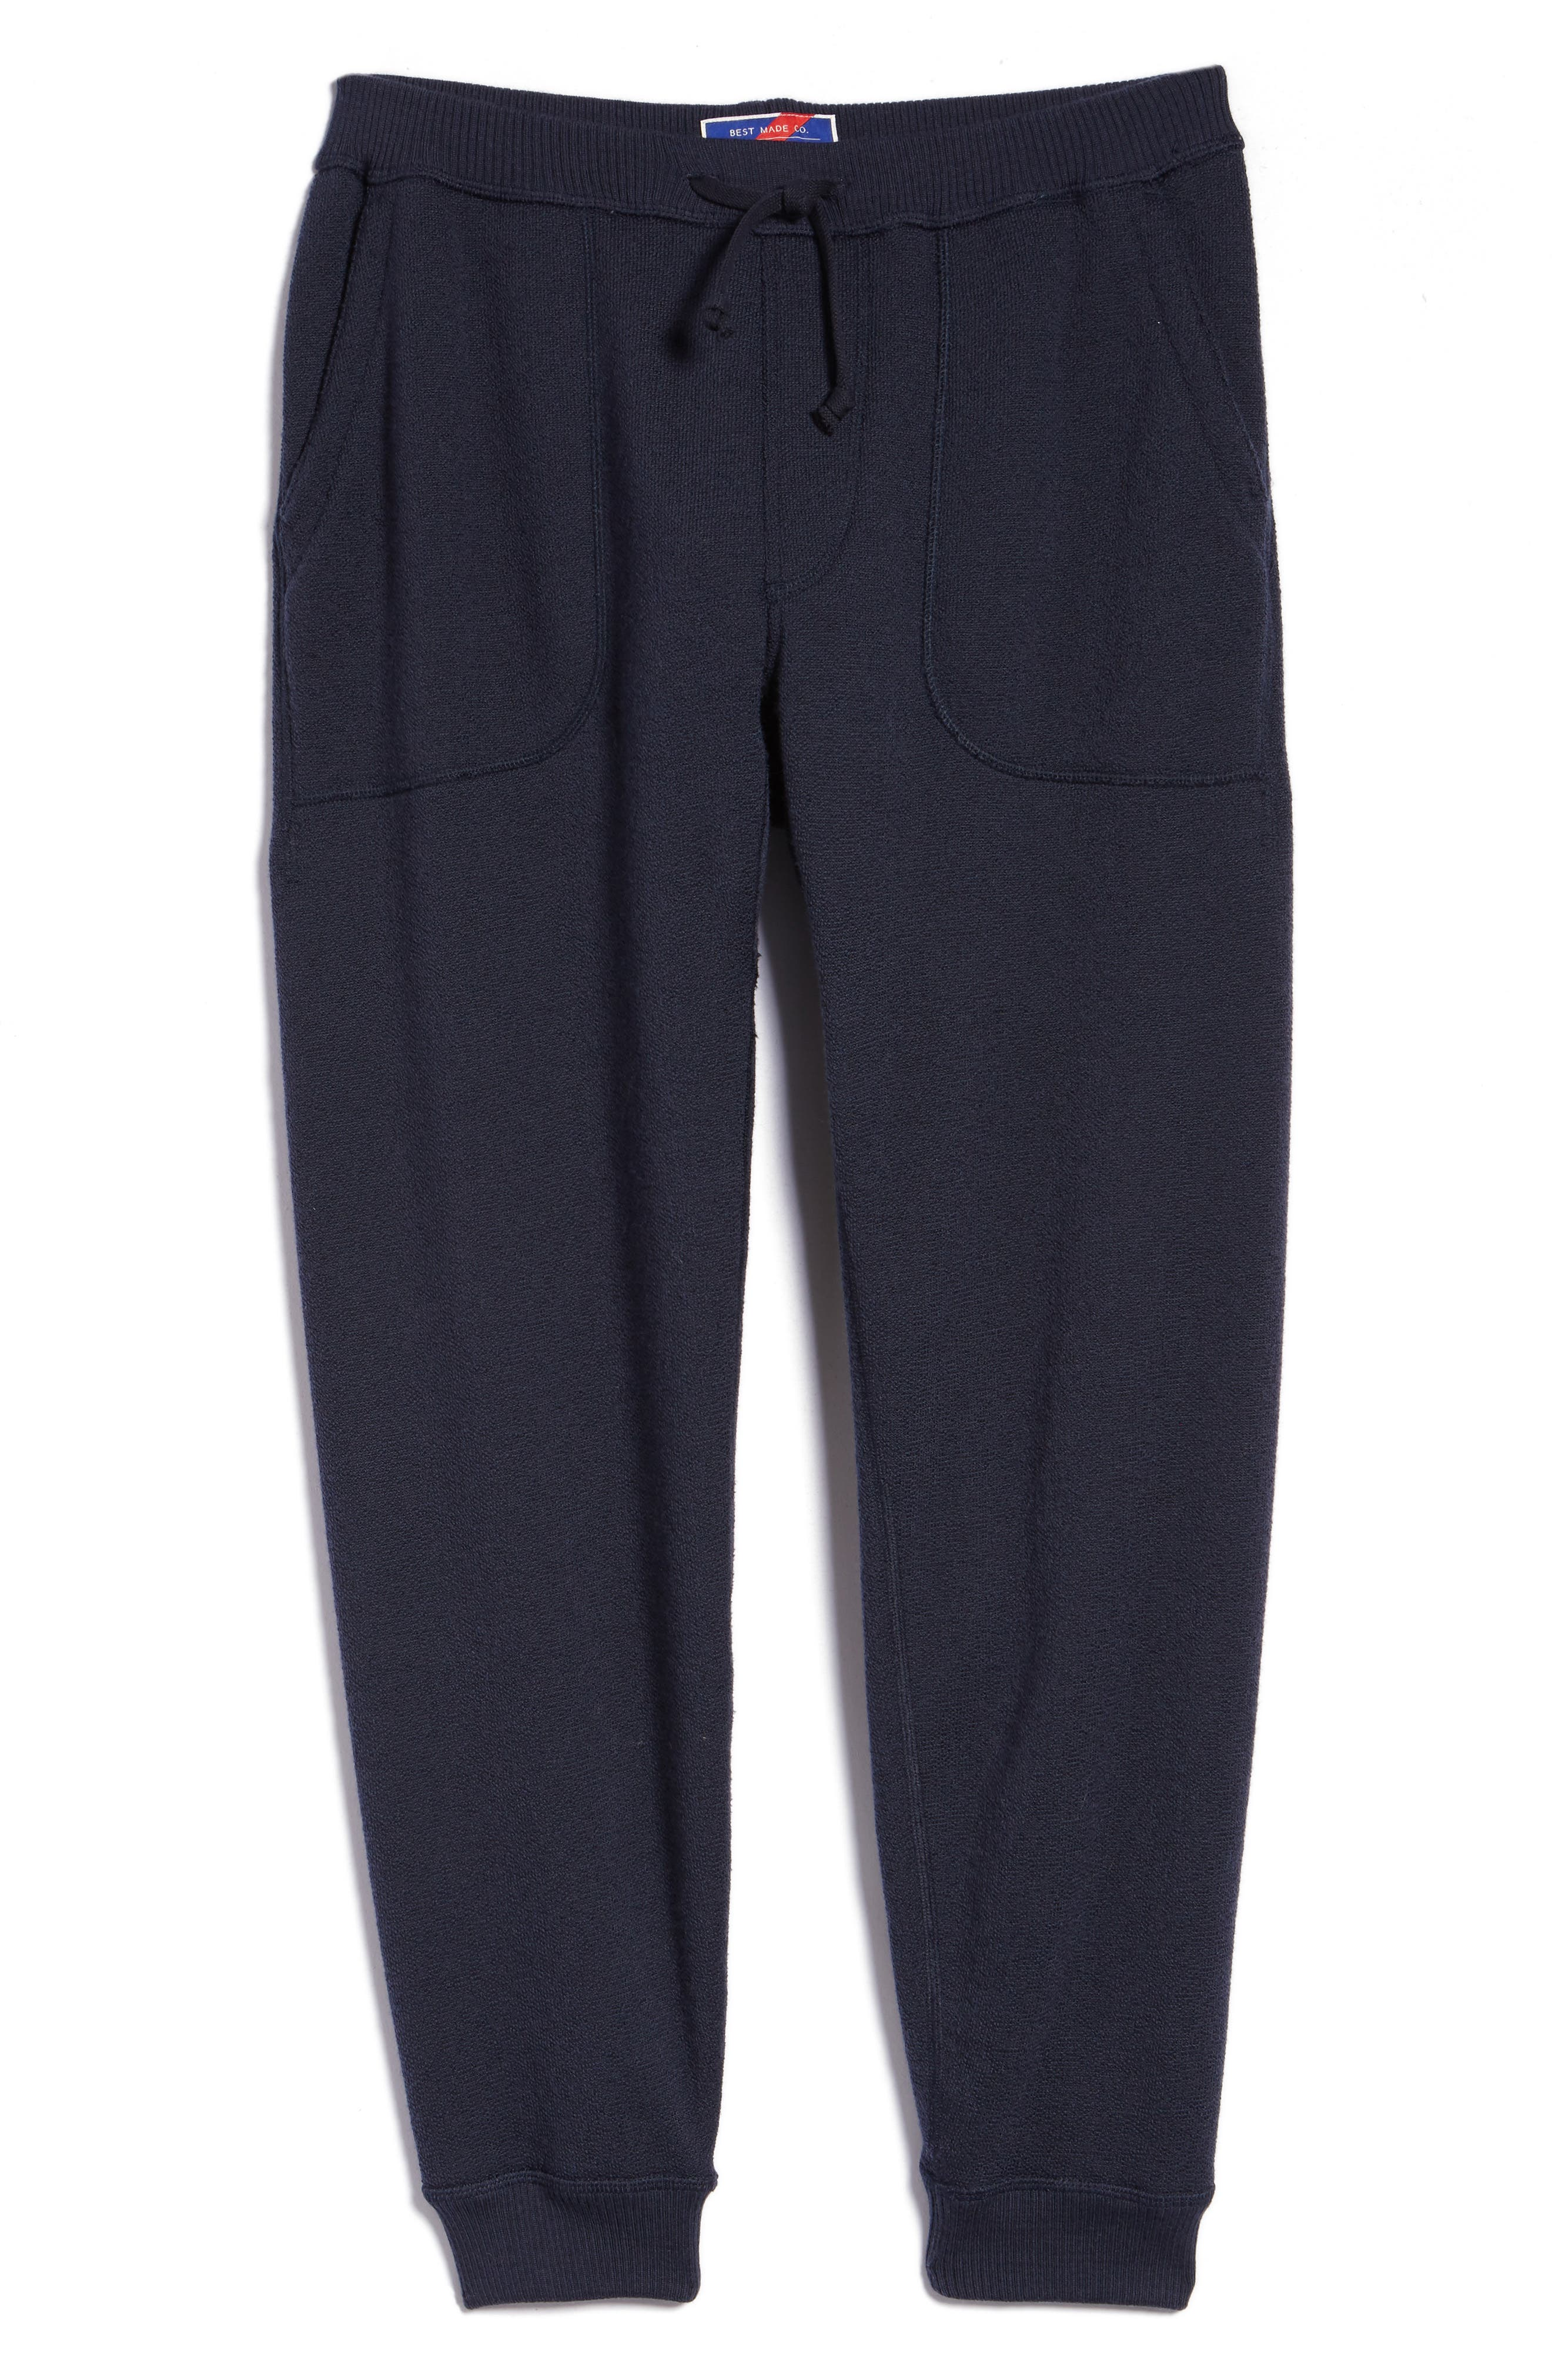 BEST MADE CO., The Merino Wool Fleece Sweatpants, Main thumbnail 1, color, 410